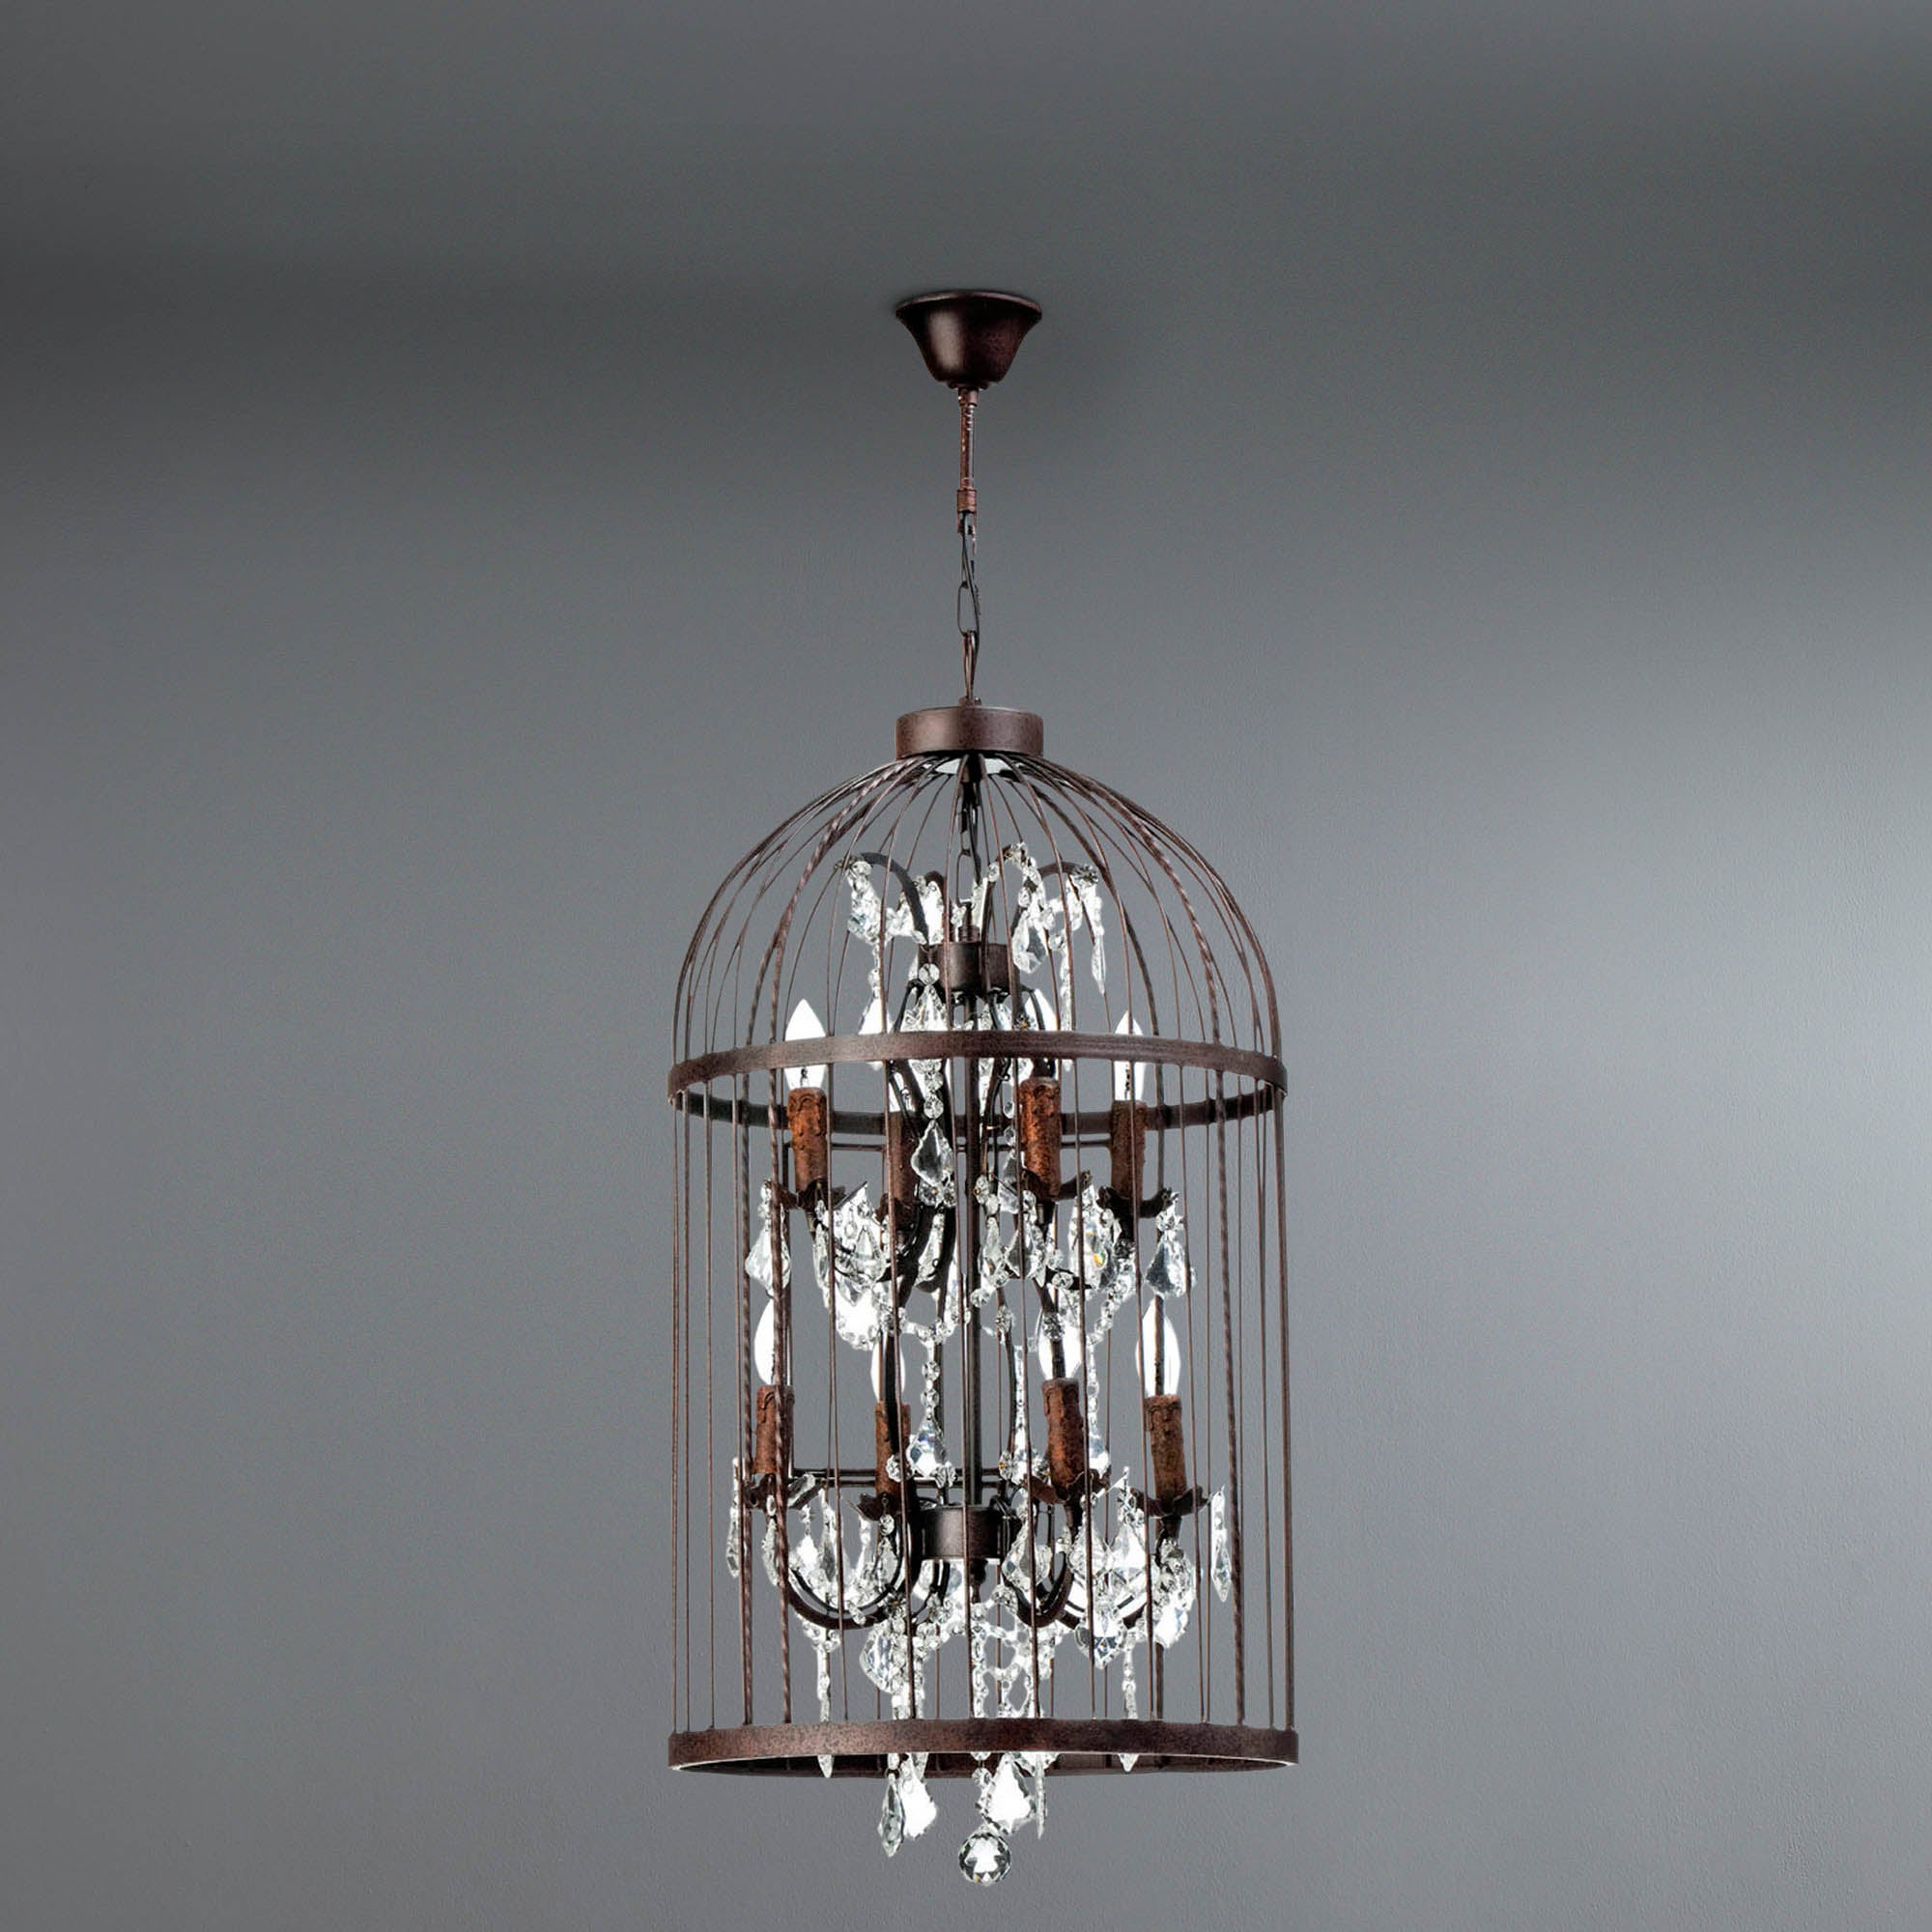 Antique Birdcage Pendant Light Brown